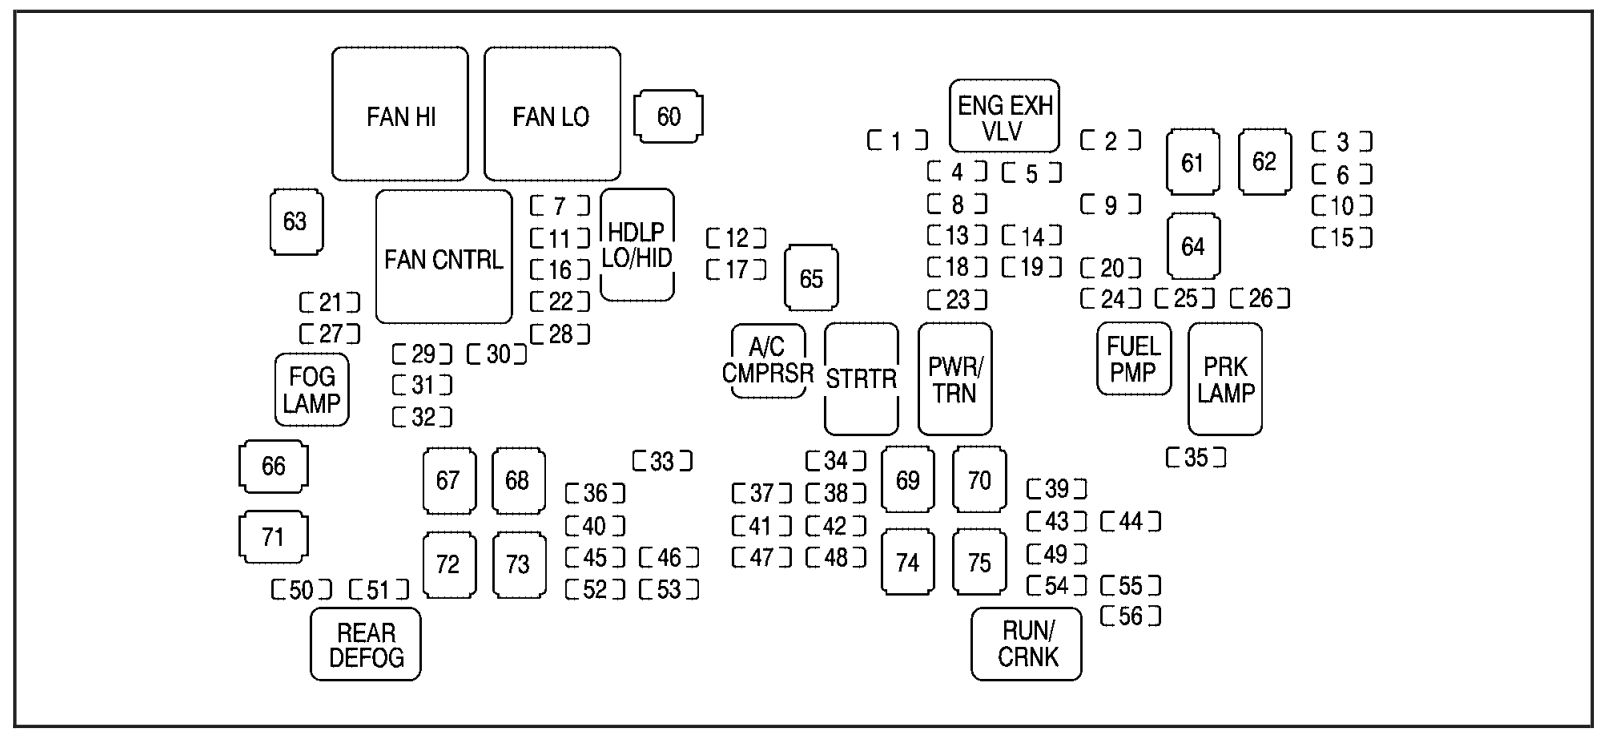 hight resolution of 2007 chevrolet avalanche fuse panel diagram wiring diagram expert 2007 chevy avalanche wiring diagram 2007 chevrolet avalanche fuse diagram